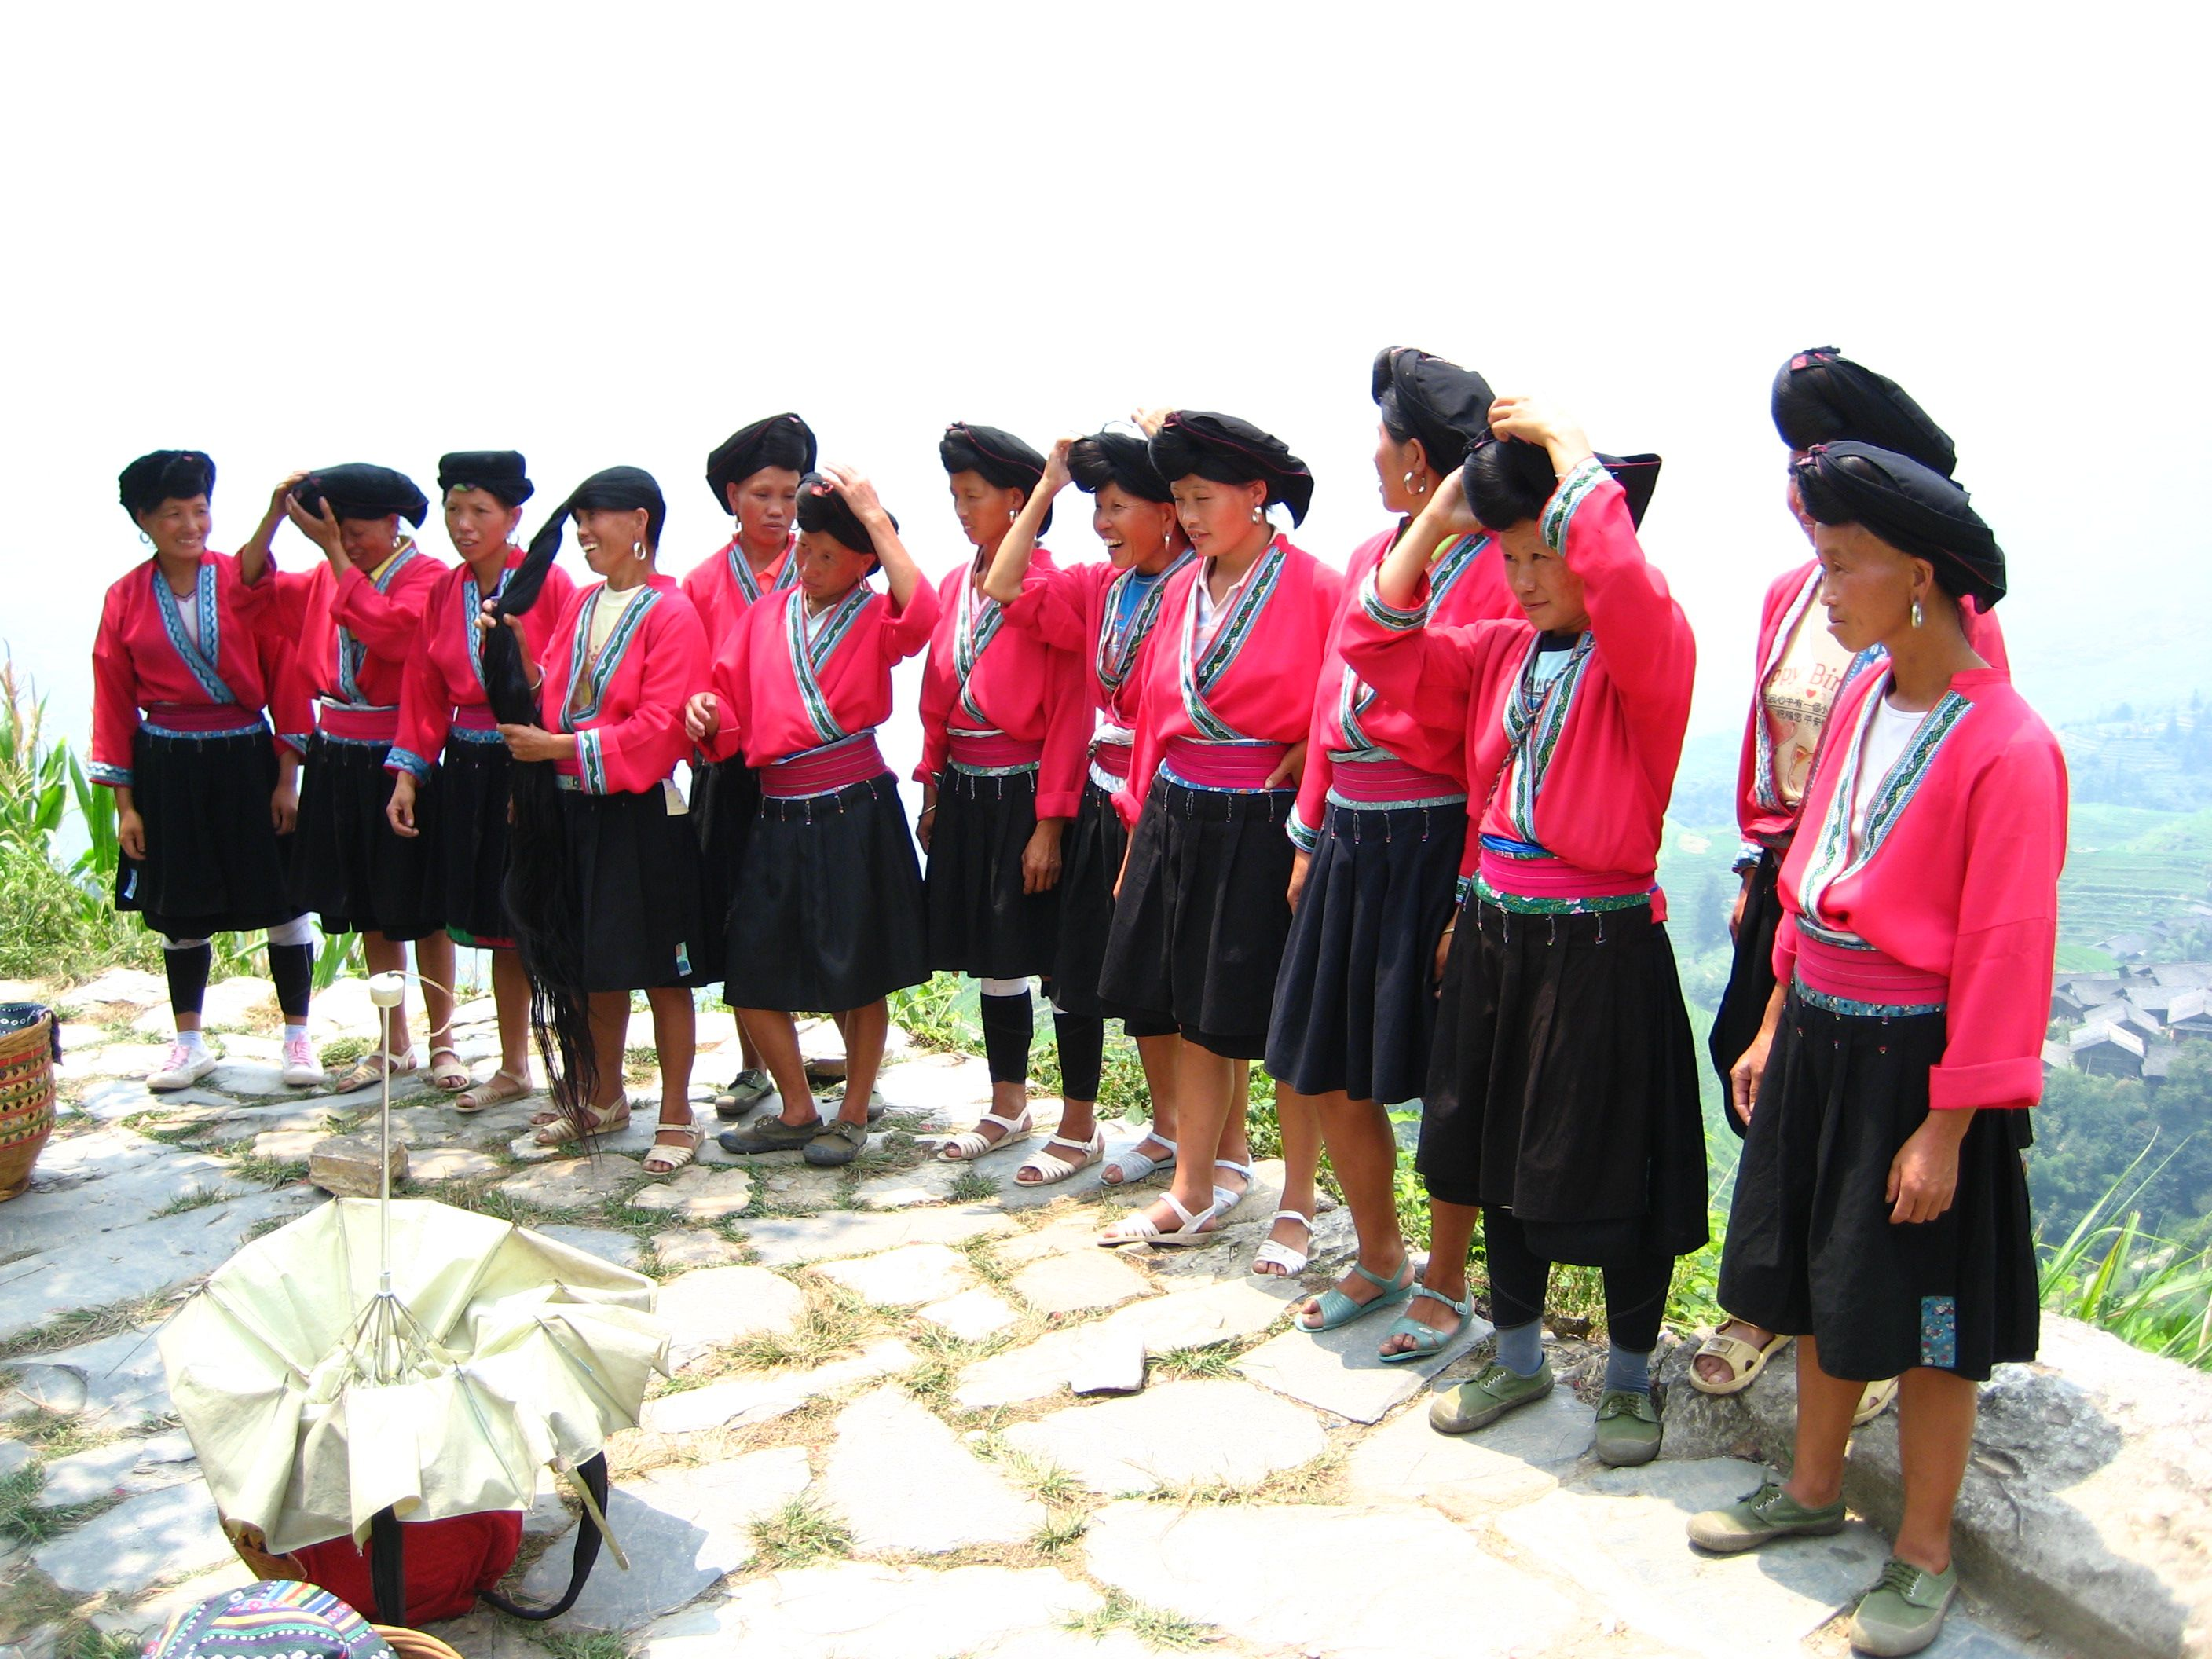 Myth-busting the Yao: Fact and fiction about Guangdong's largest ethnic minority